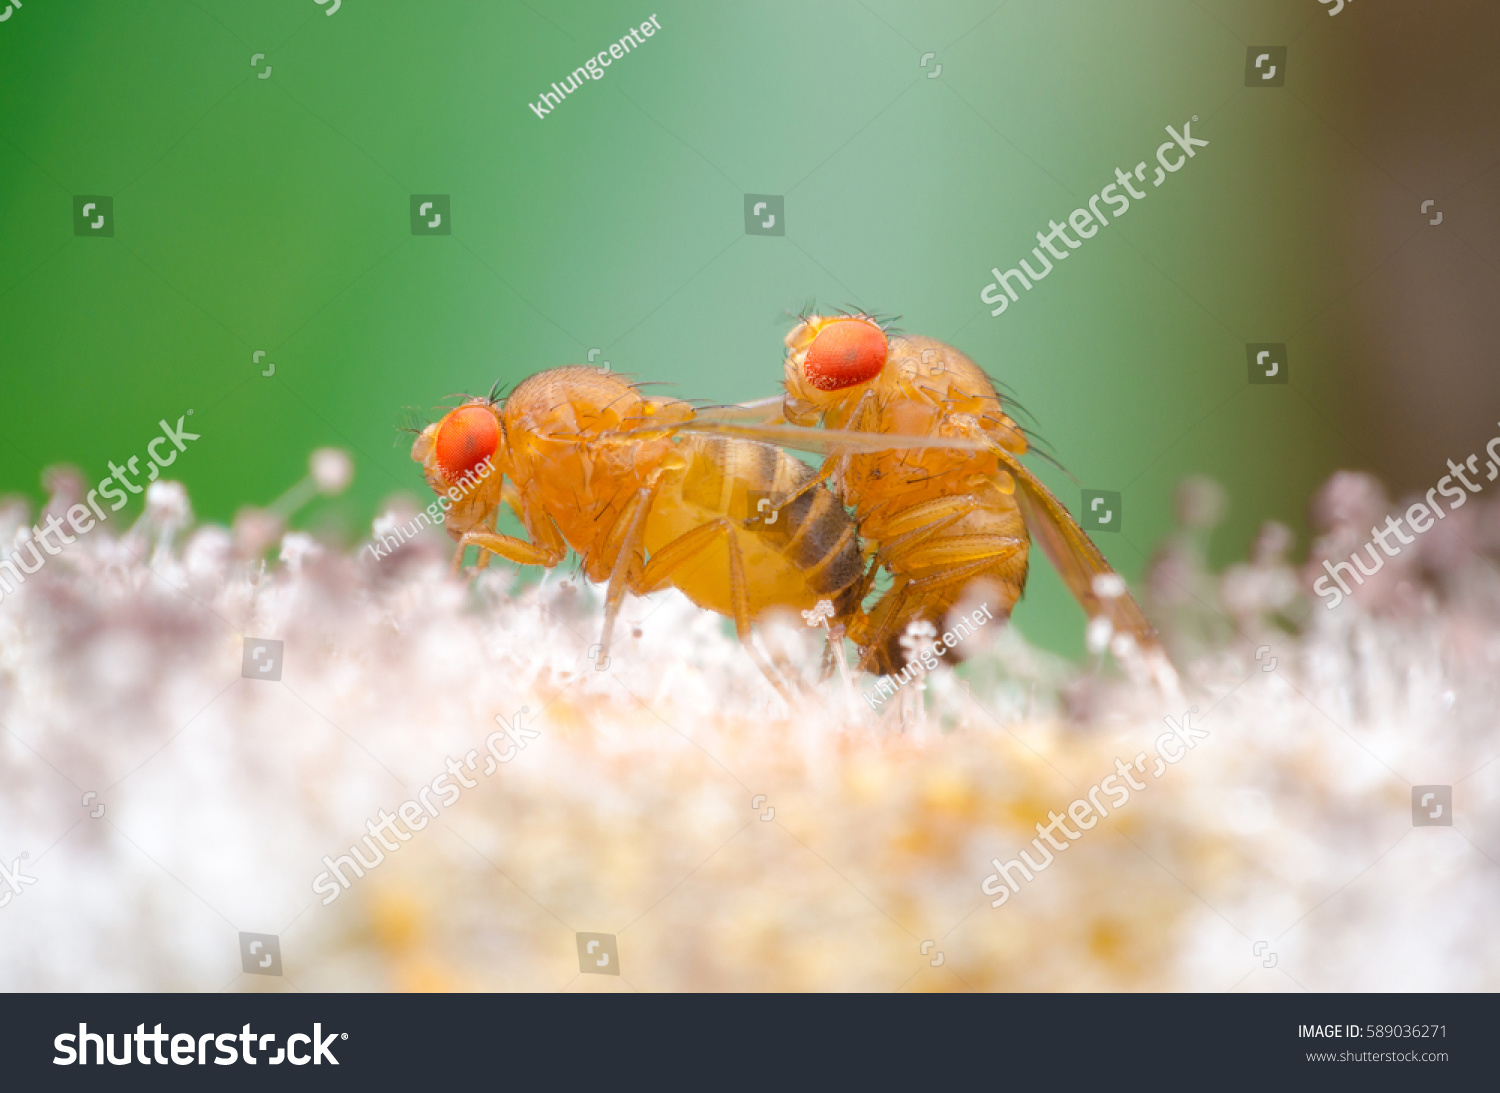 Super Macro Fruit Fly Drosophila Mating Stock Photo (Edit Now ...